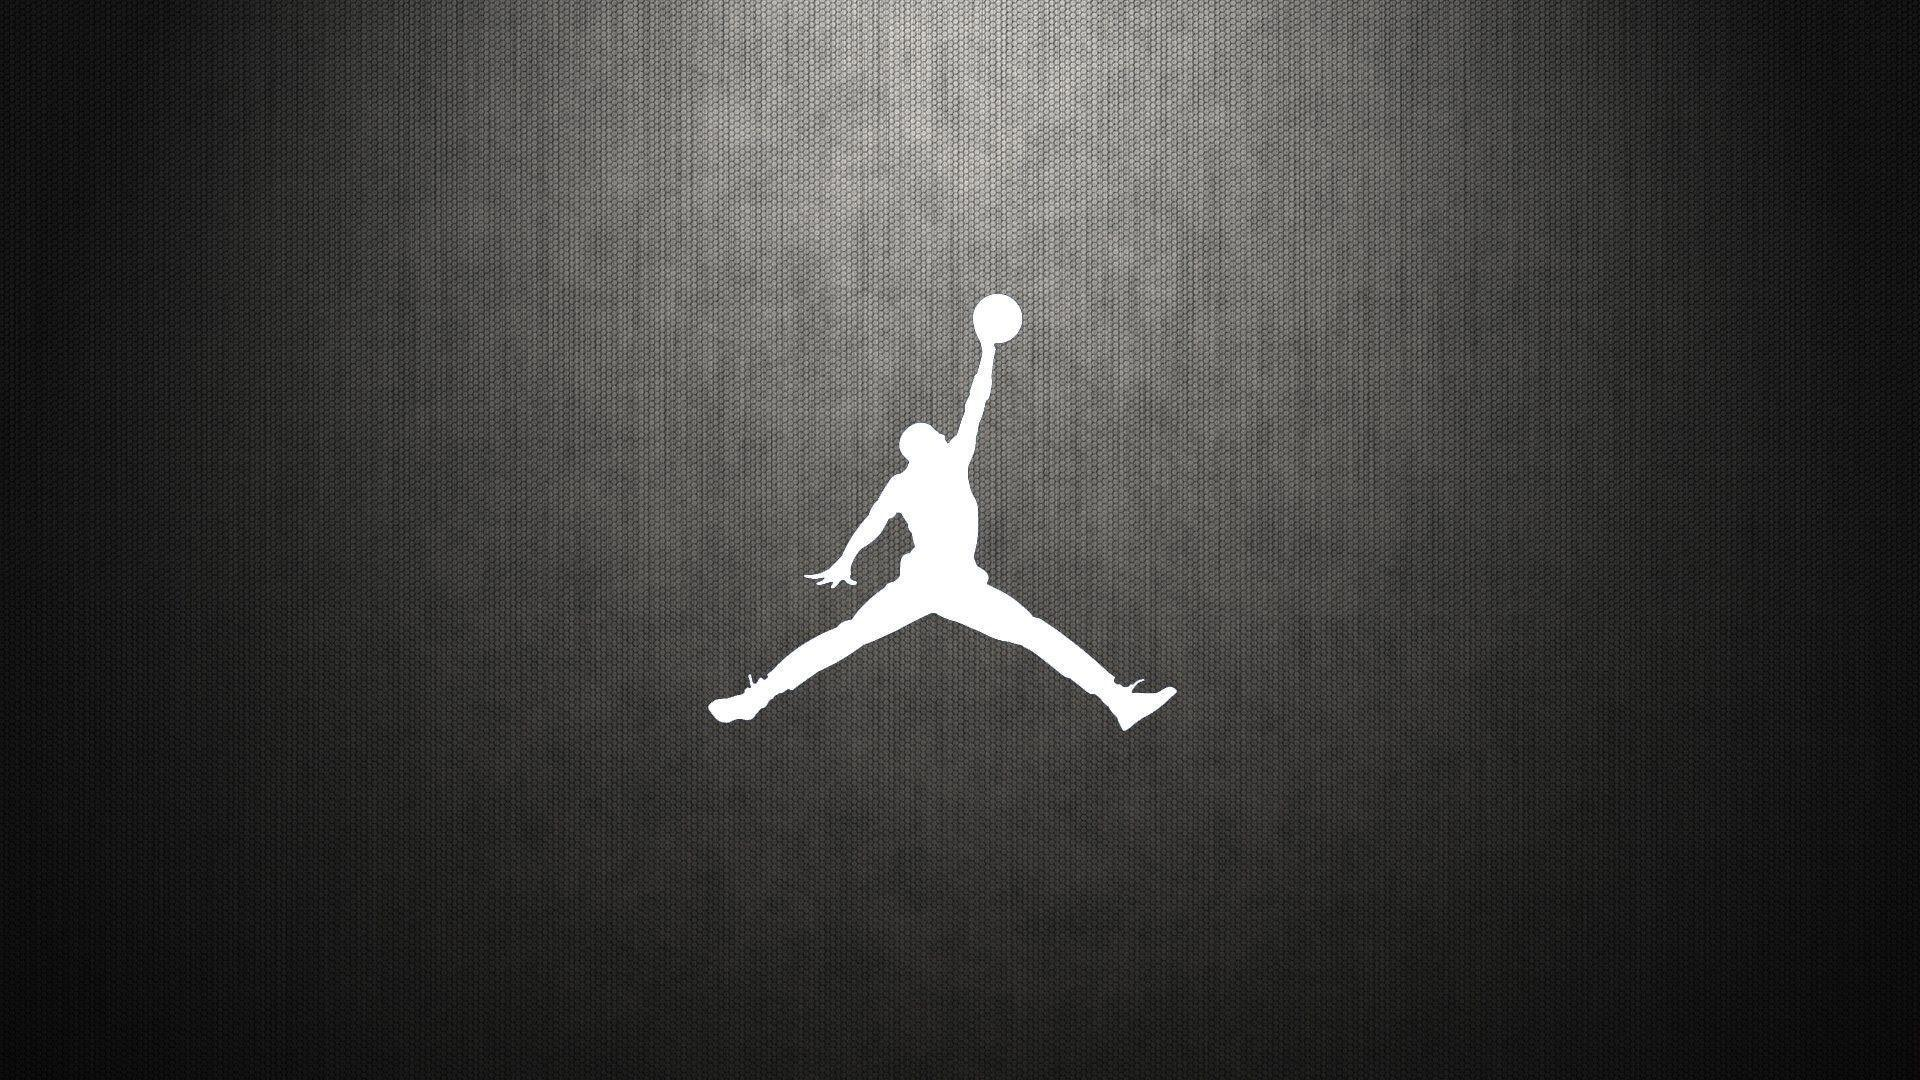 Image For > Jordan 23 Wallpapers